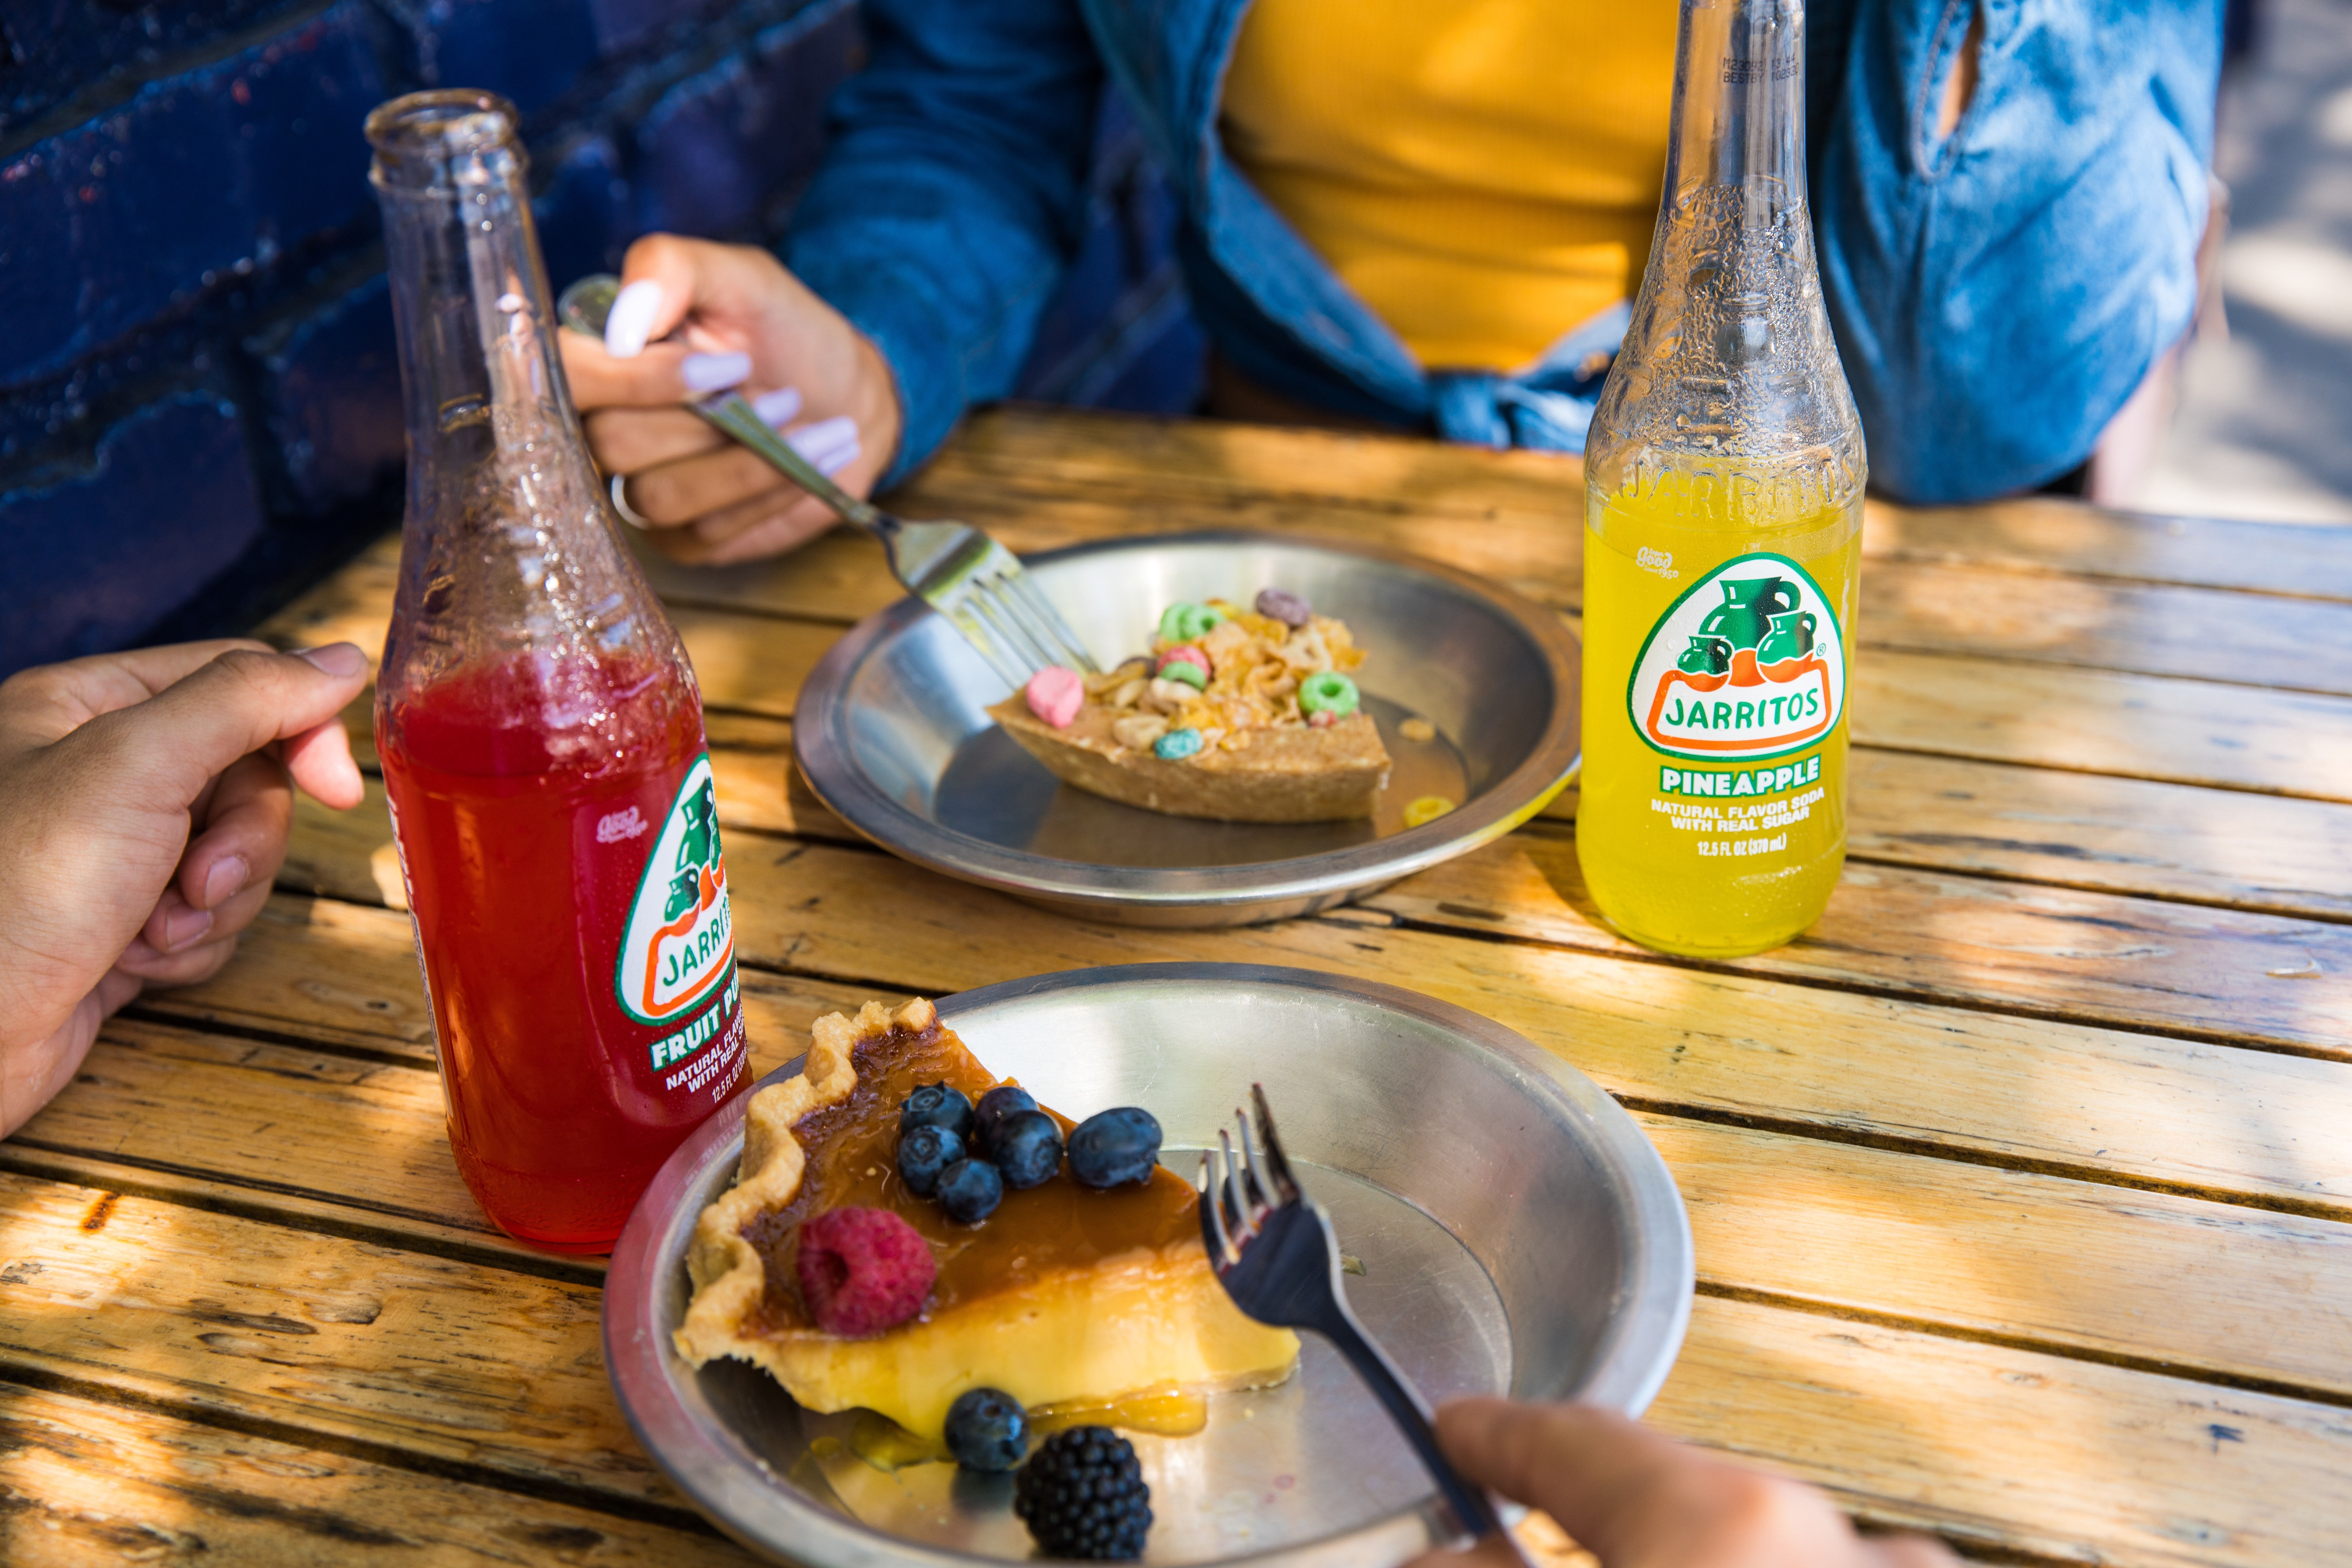 Image Source: Getty Images/Jarritos Mexican Soda